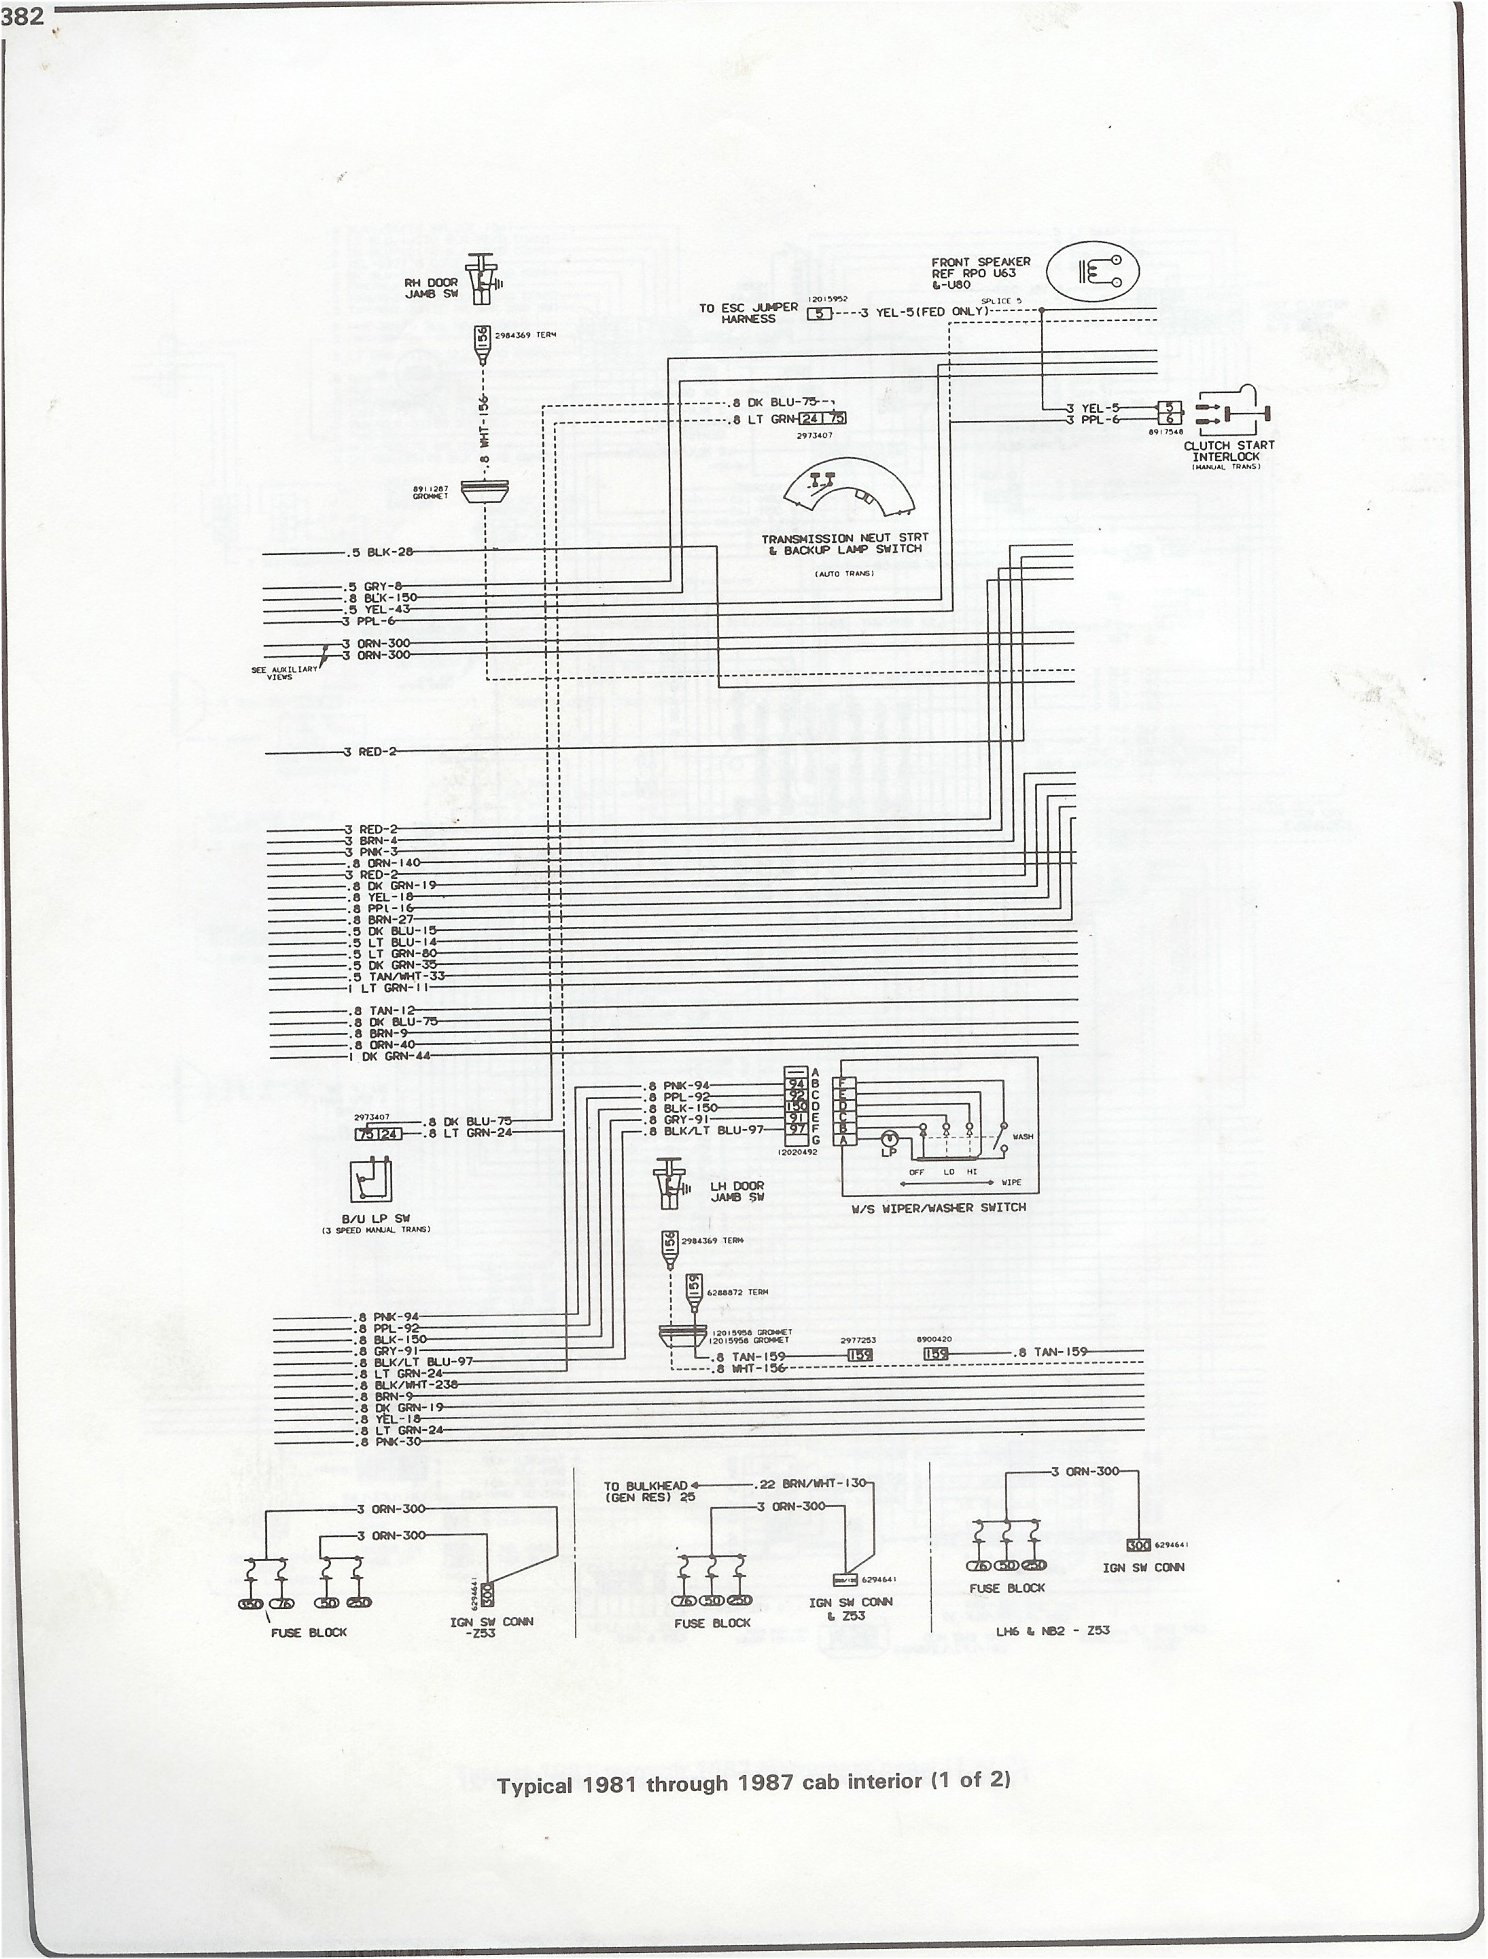 hight resolution of 81 87 cab interior page 1